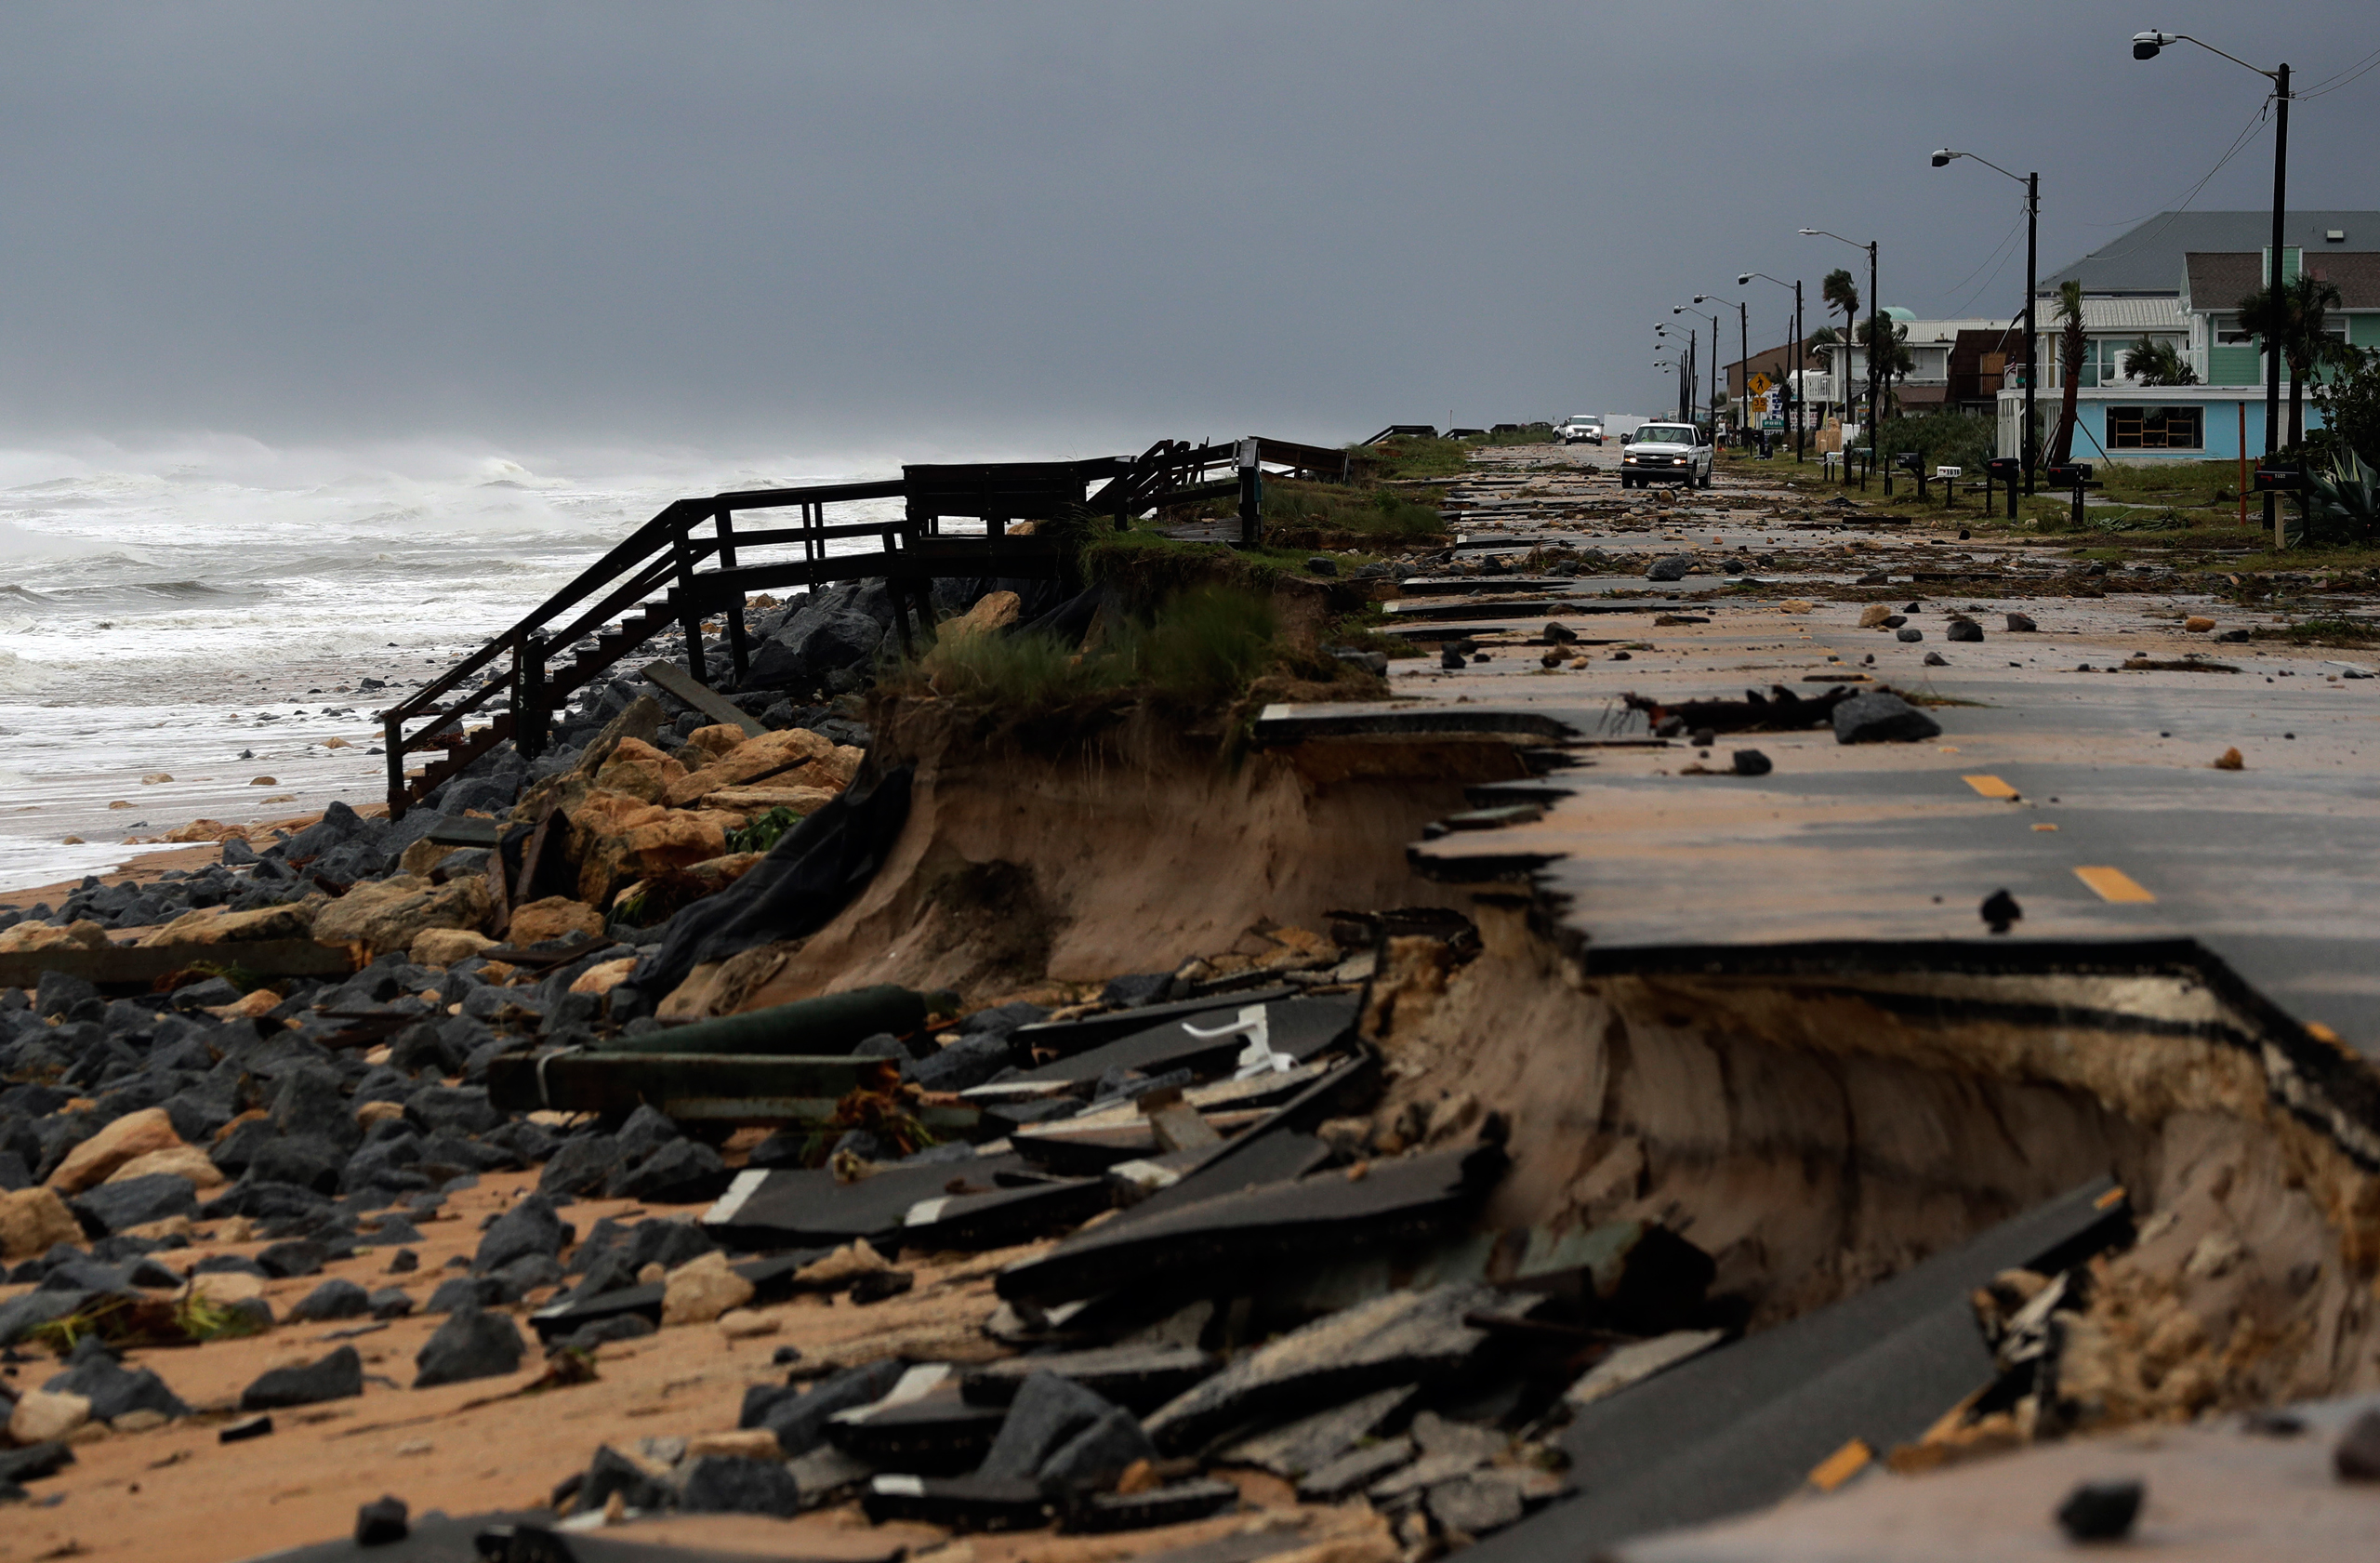 An official vehicle navigates debris on Highway A1A after it was partially washed away by Hurricane Matthew in Flagler Beach, Fla., on Oct. 7, 2016.